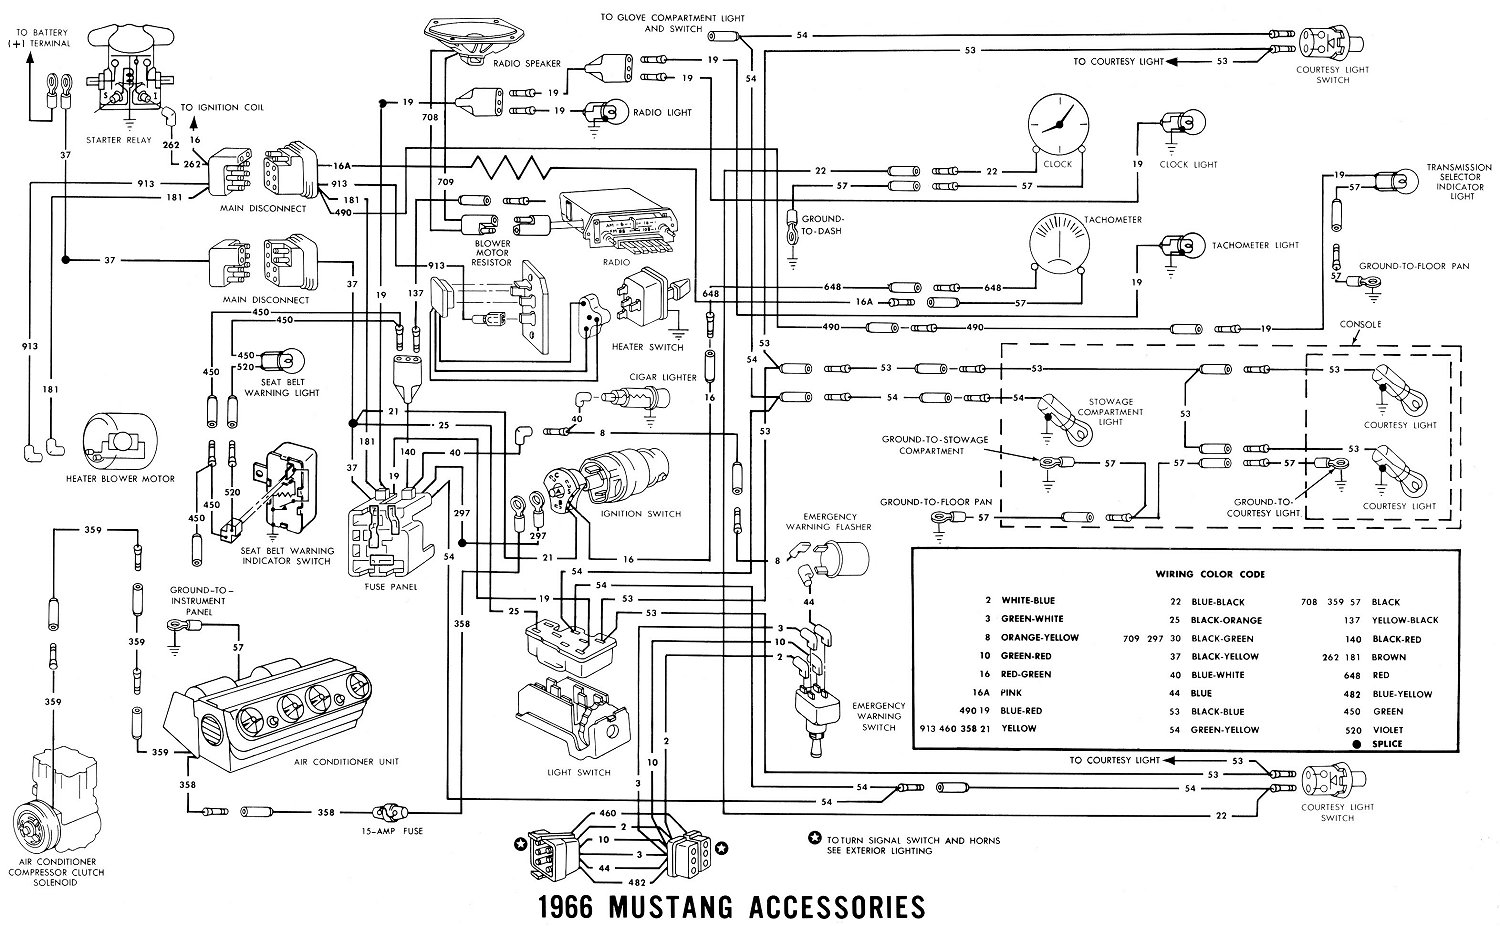 lelu's 66 mustang 1966 mustang wiring diagrams 1960 ford f100 wiring diagram 1966 mustang accessories diagram